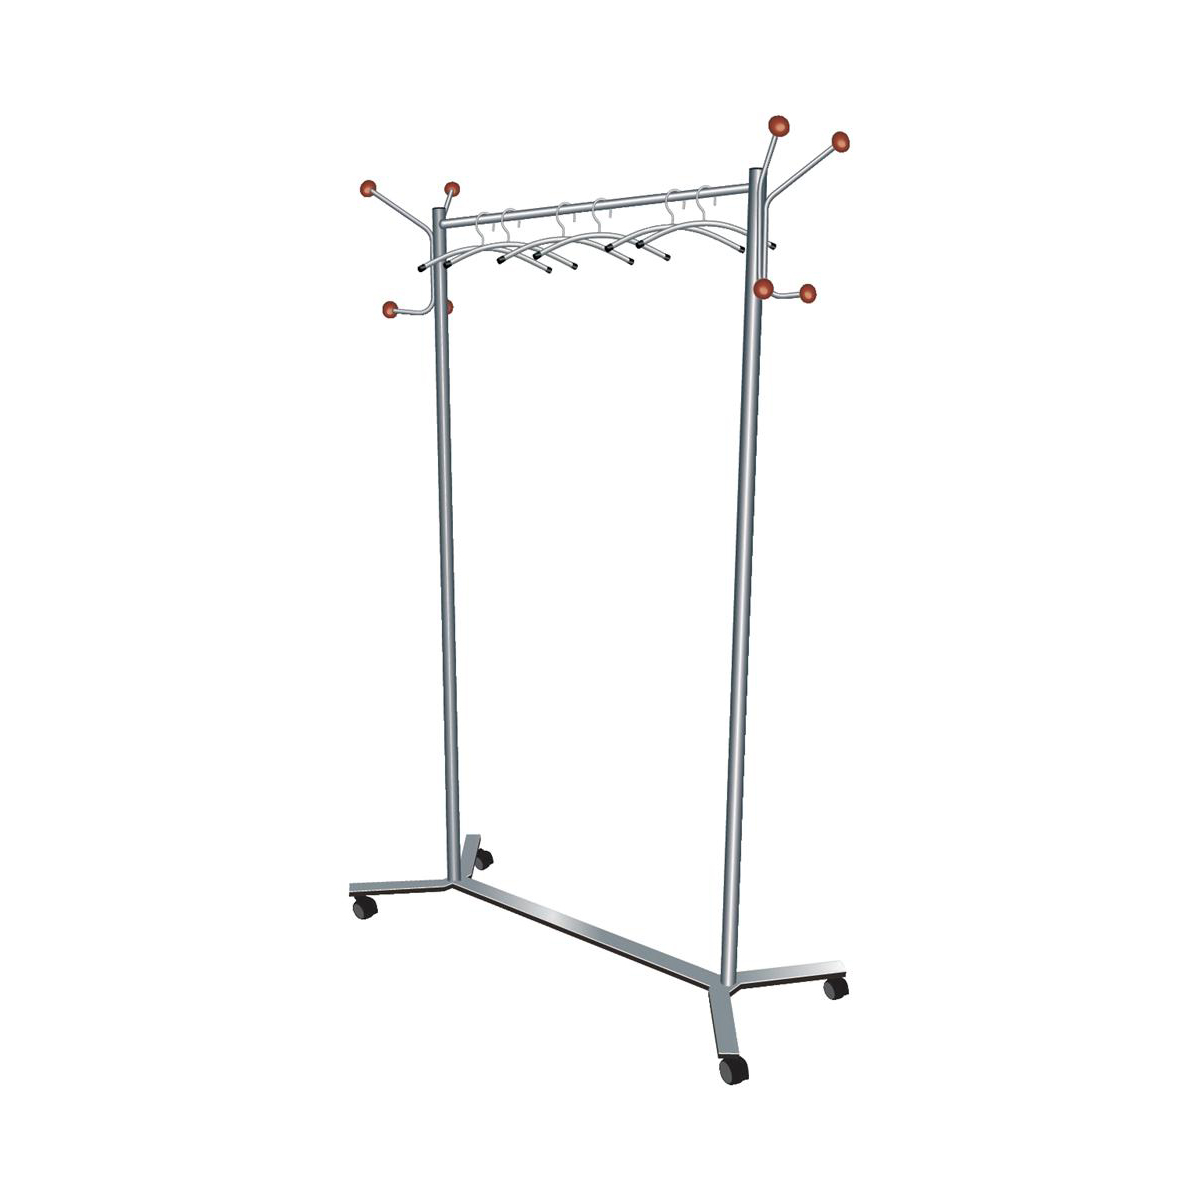 Coat racks 5 Star Facilities Coat Rack Mobile 4 Wheels 4 Pegs 4 Hooks Capacity of 36 Hangers 1200x500x1700mm Silver